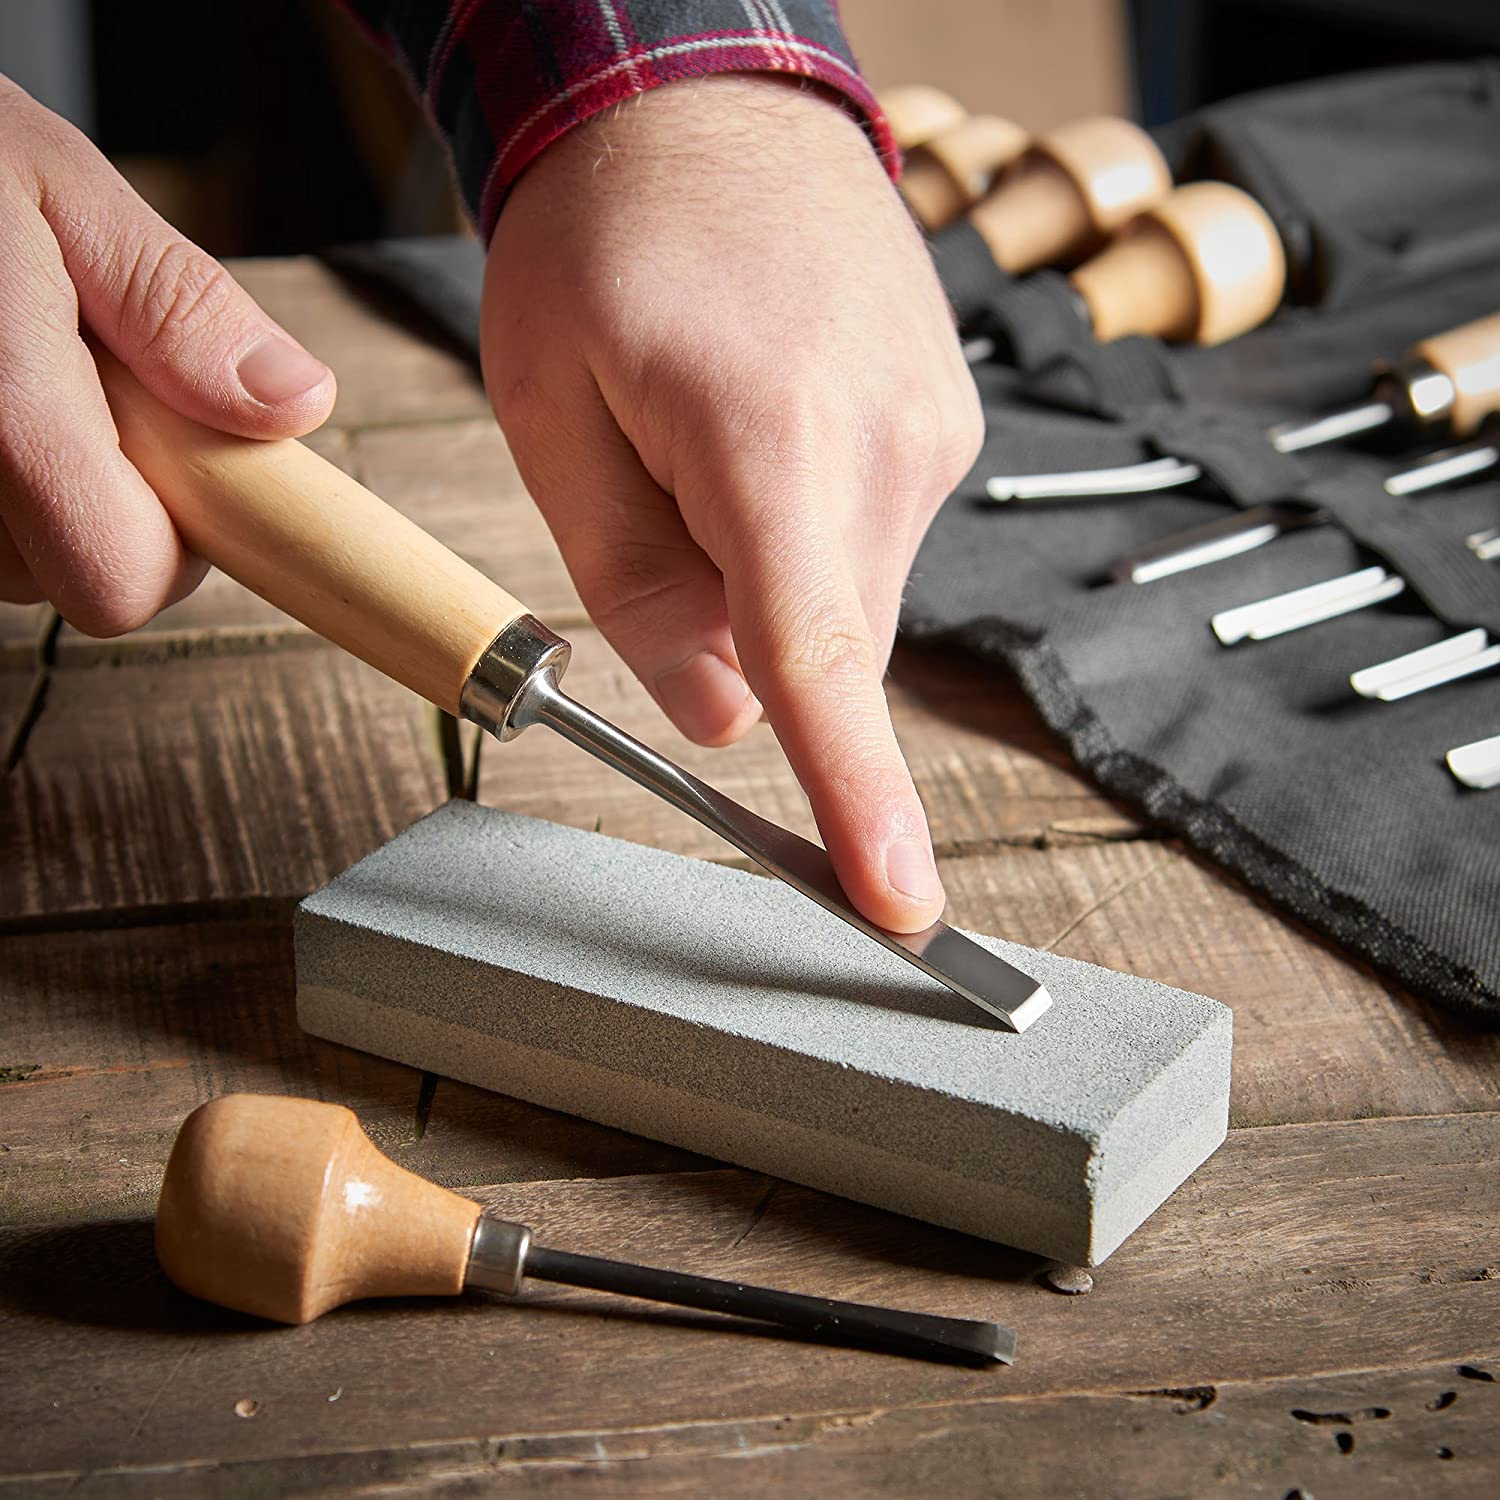 , What Are The Best Carving Knives?, Wood Carving Tools